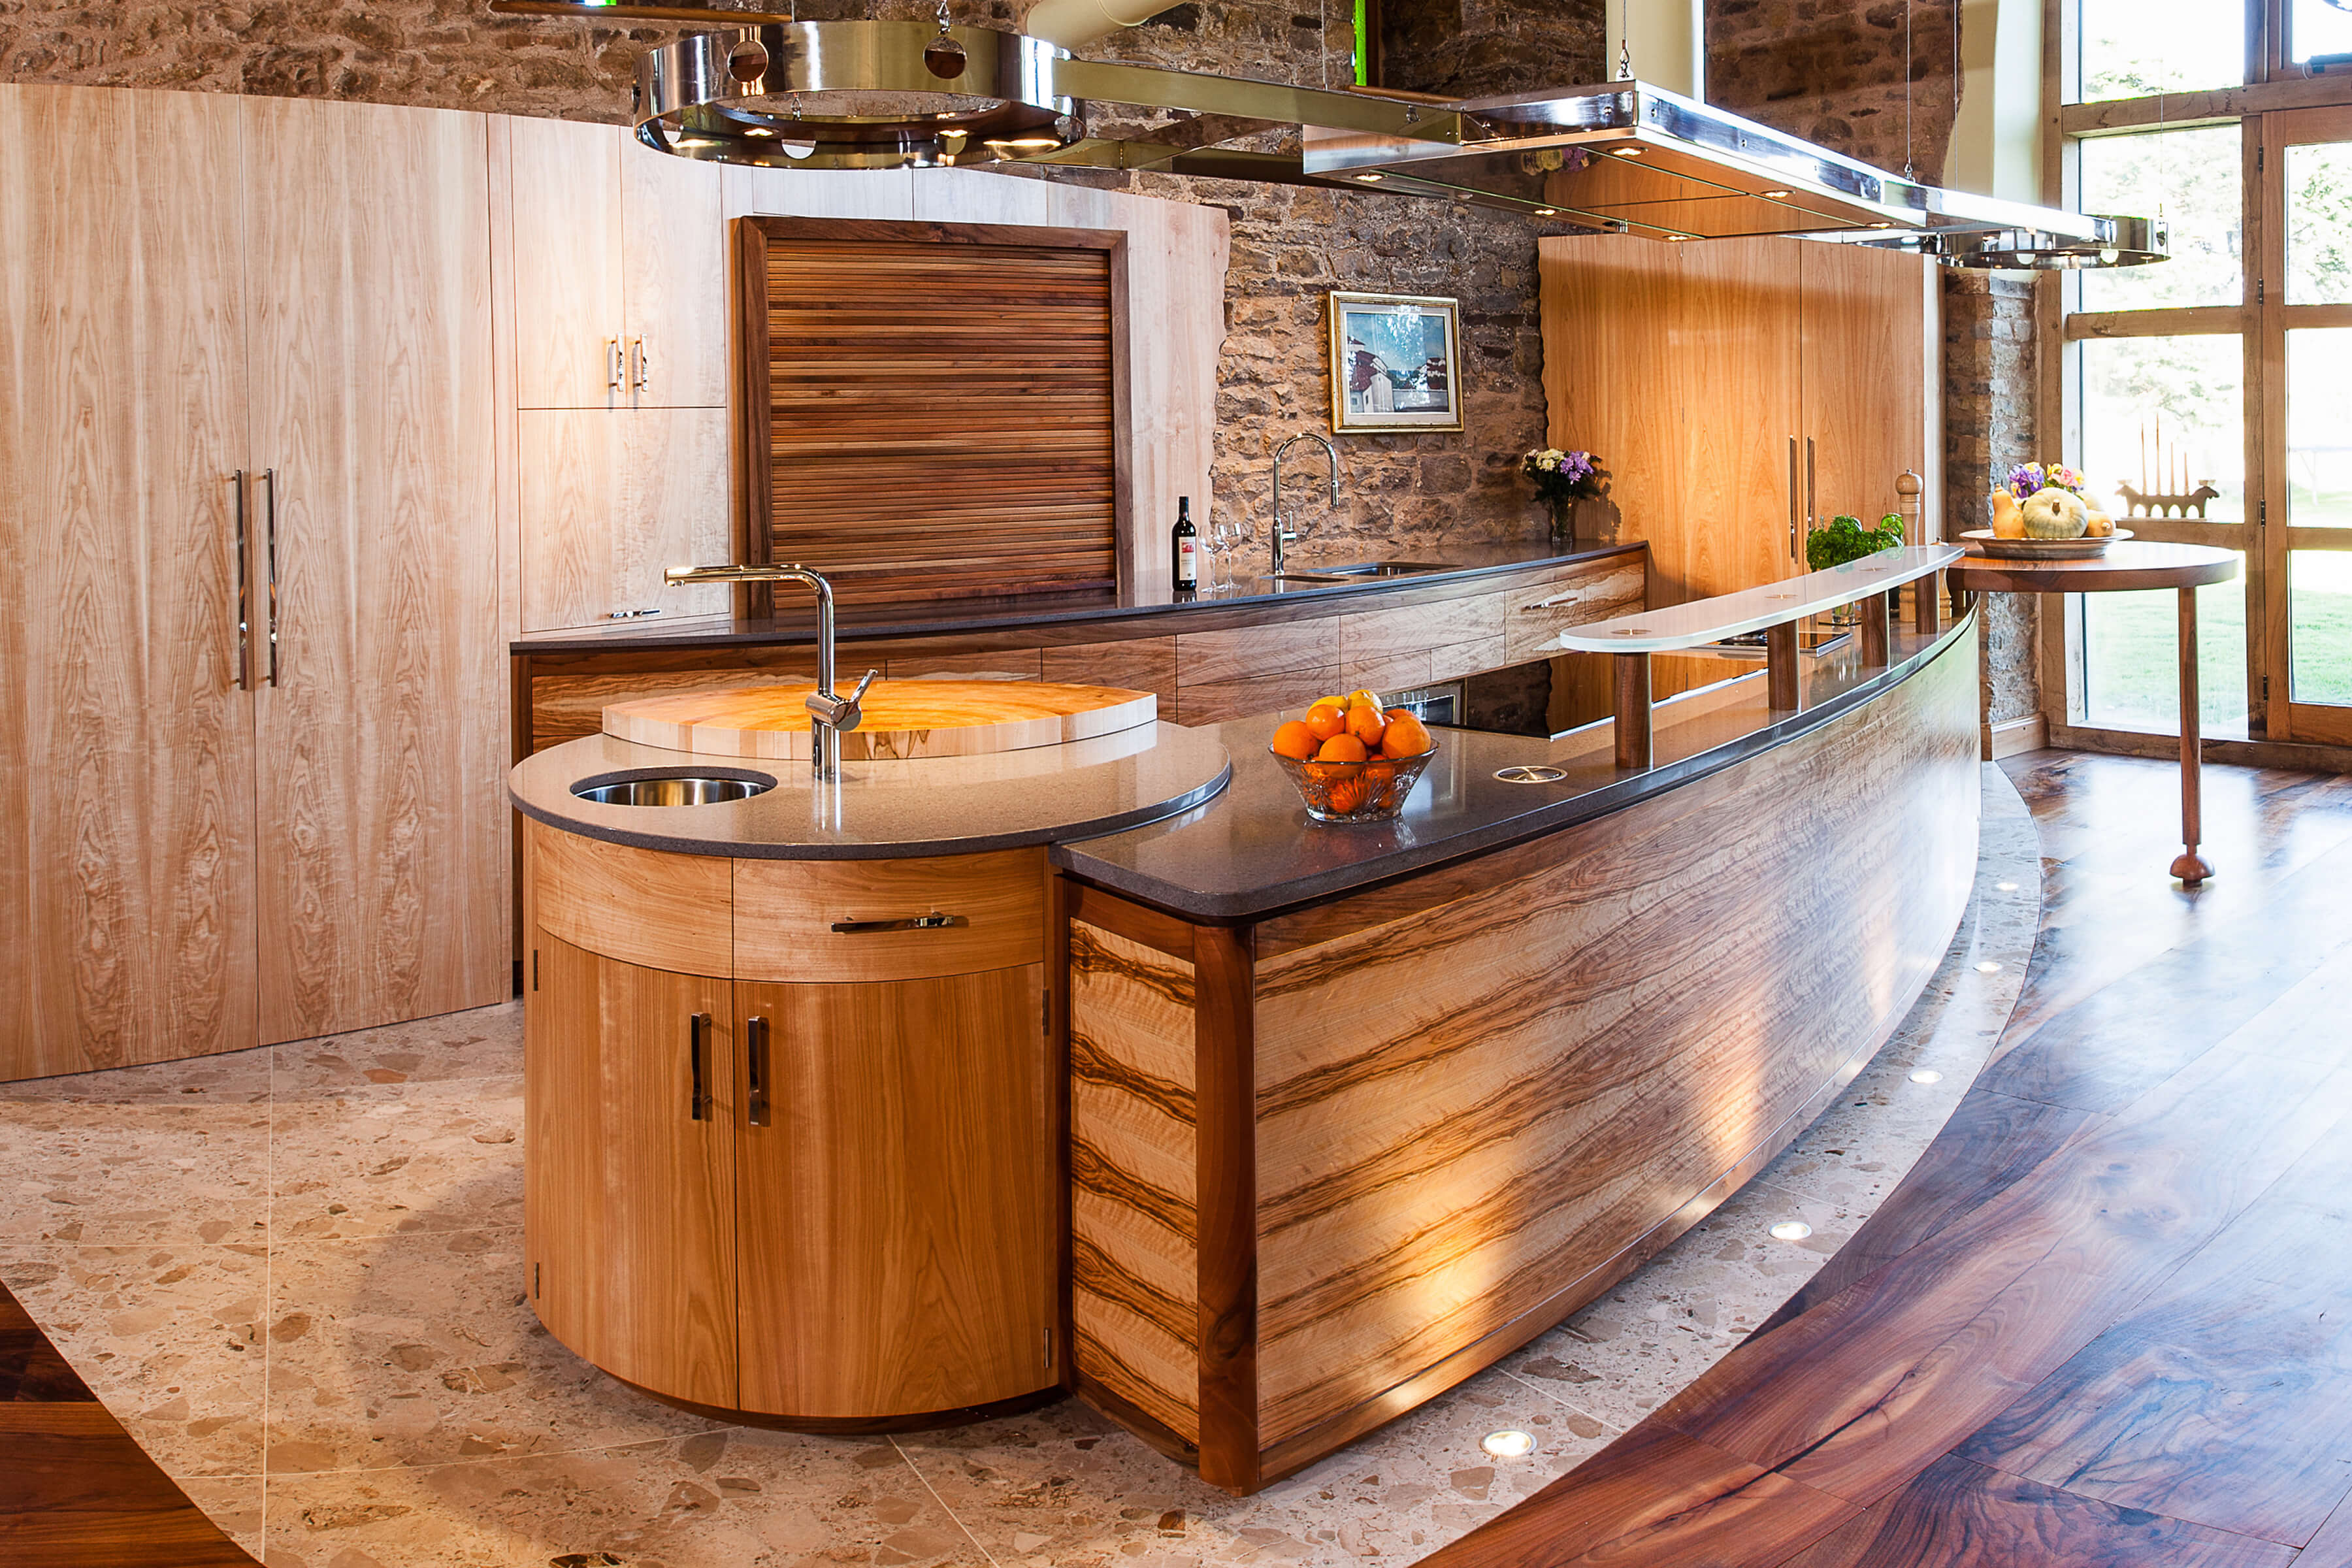 Curved kitchen design for barn restoration by Splinterworks